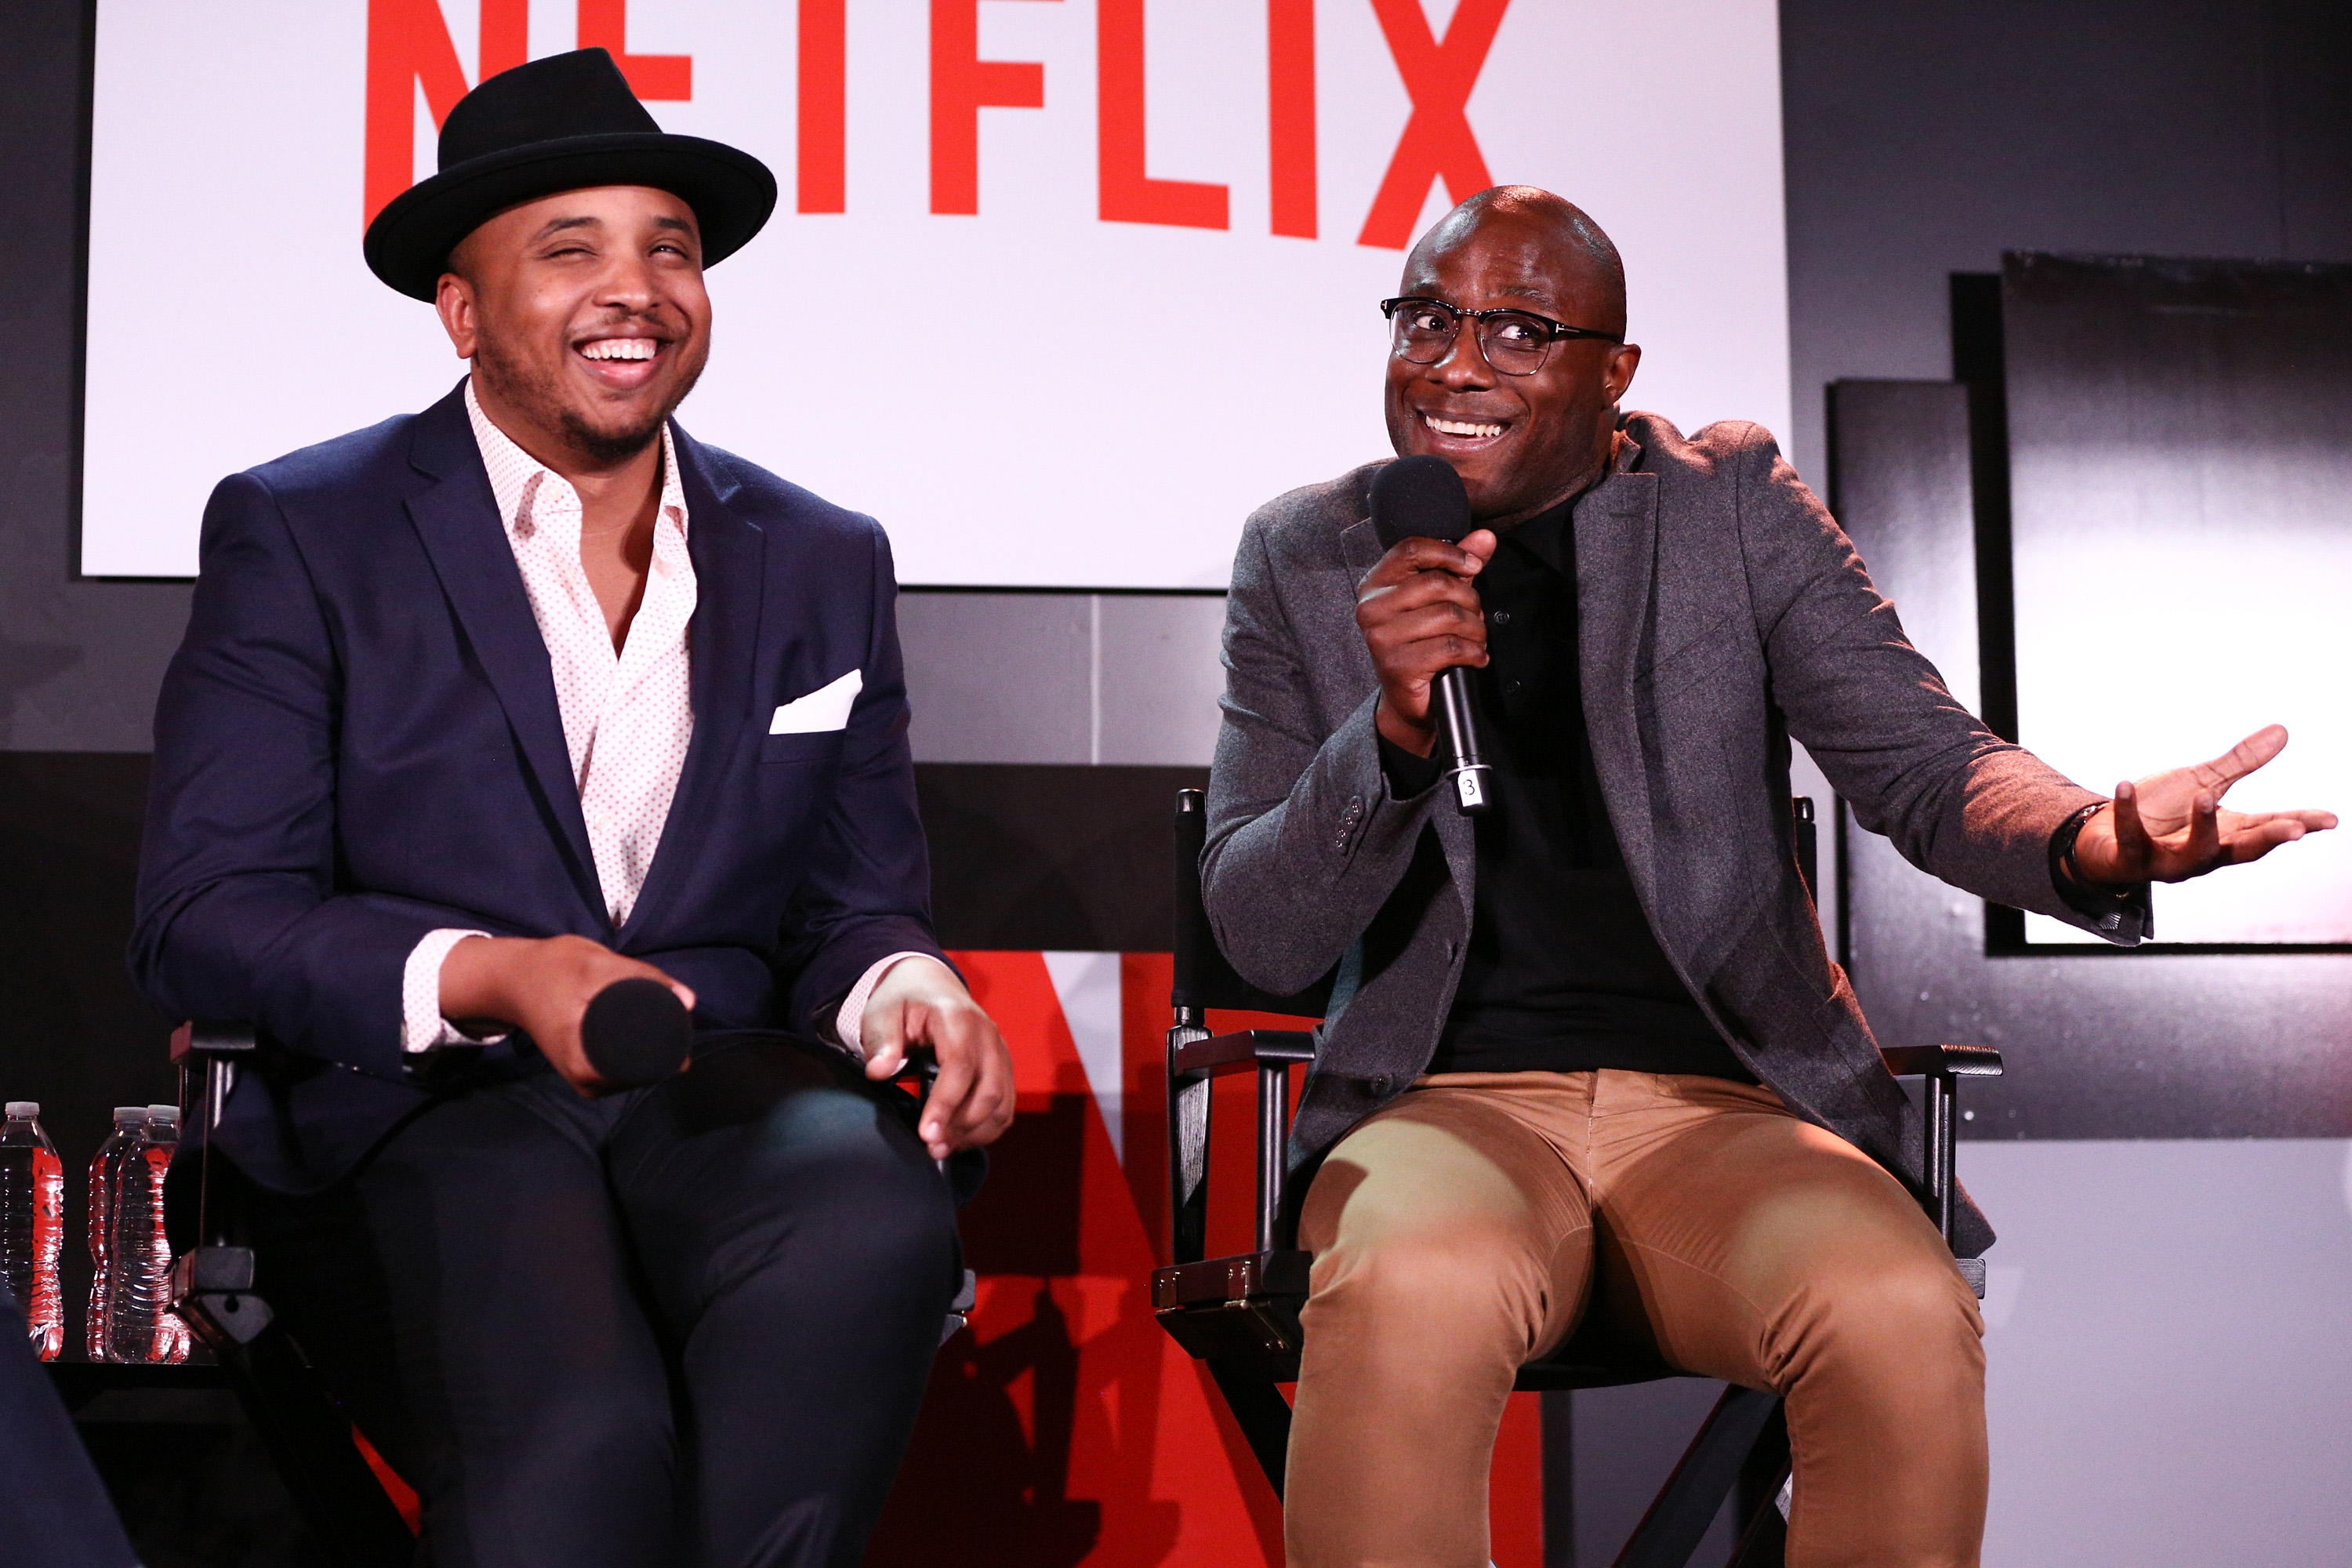 Netflix's 'Dear White People' For Your Consideration Event - Panel